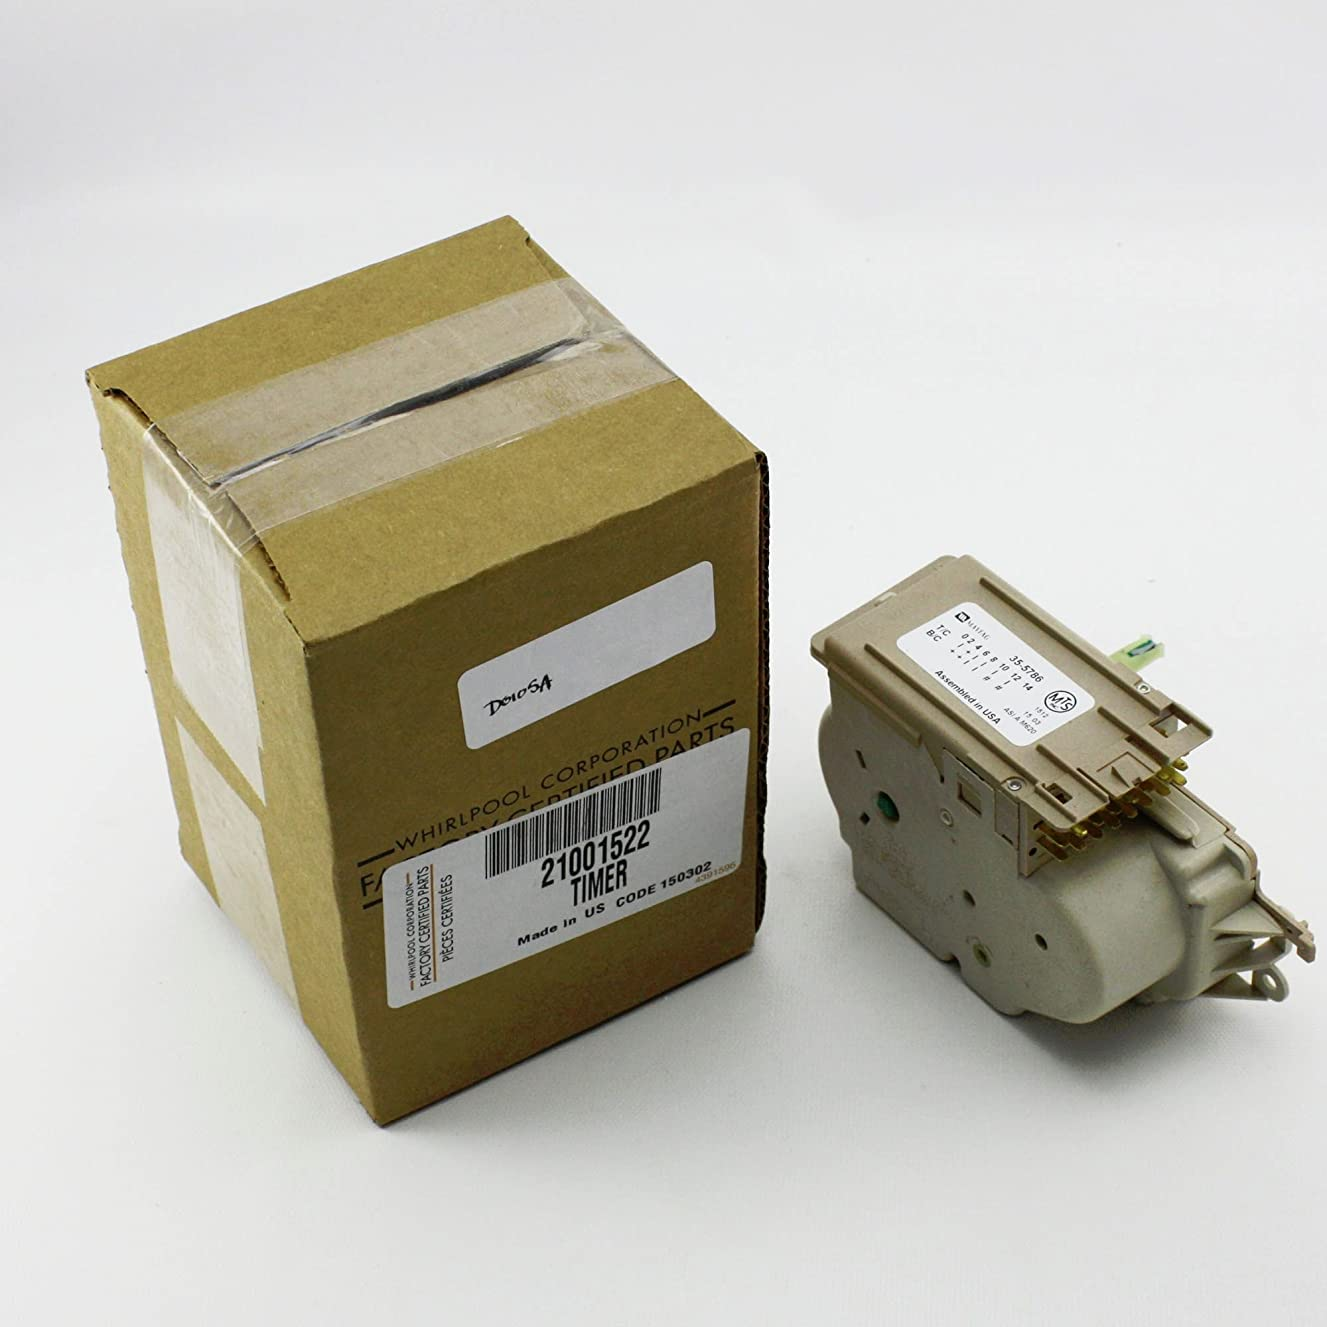 Whirlpool Part Number 21001522: TIMER